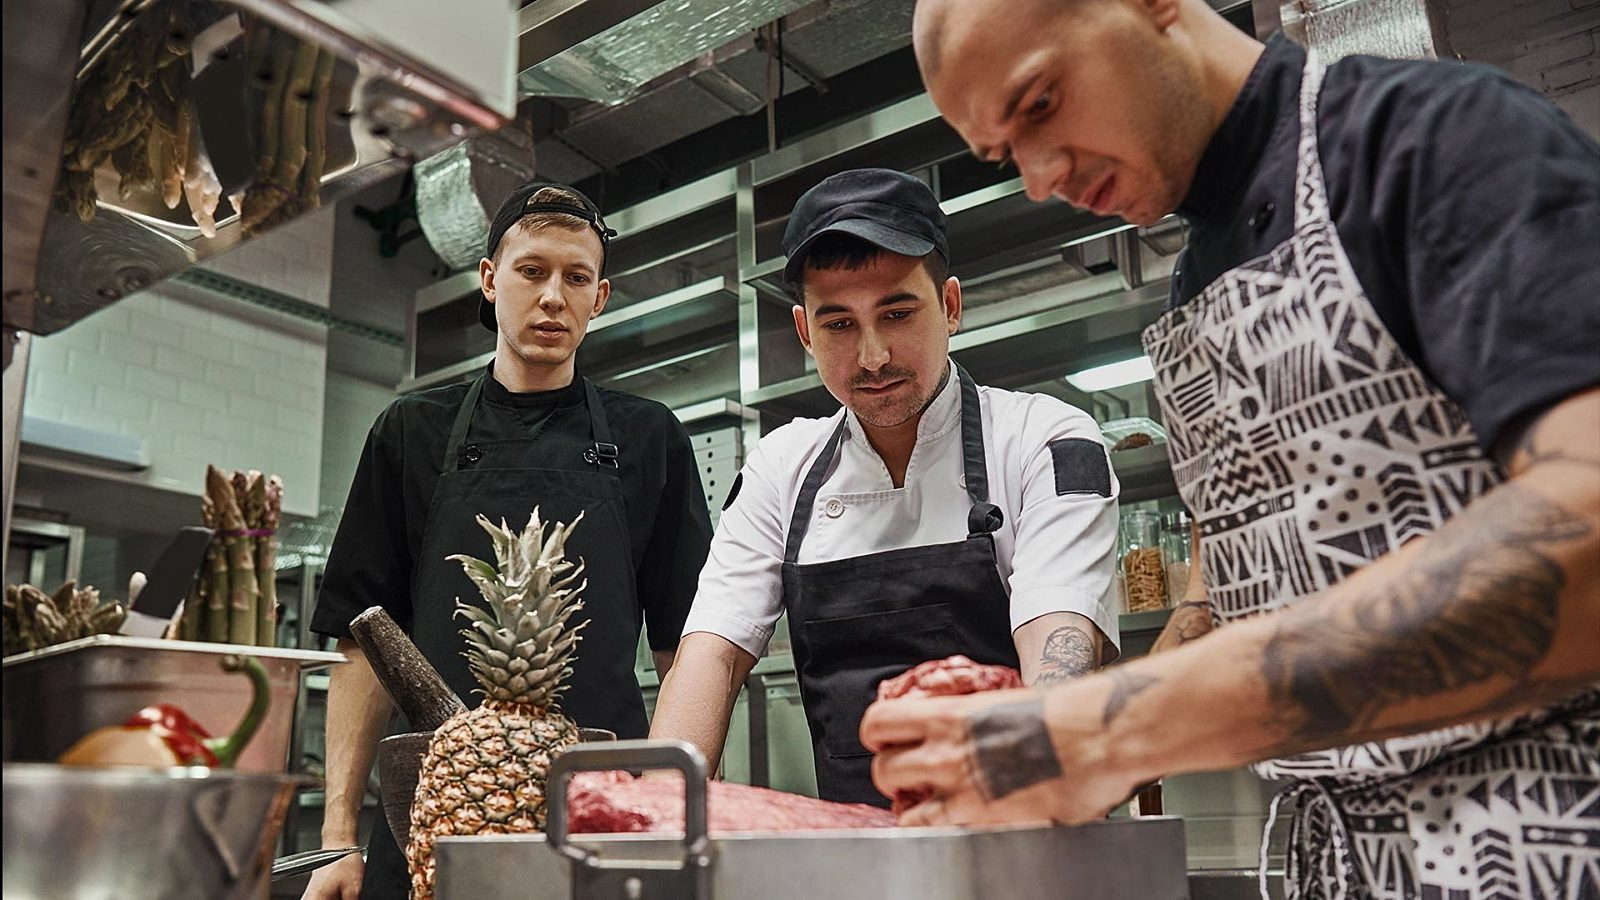 A cook showing another cook how to train restaurant employees, holding some ingredients.